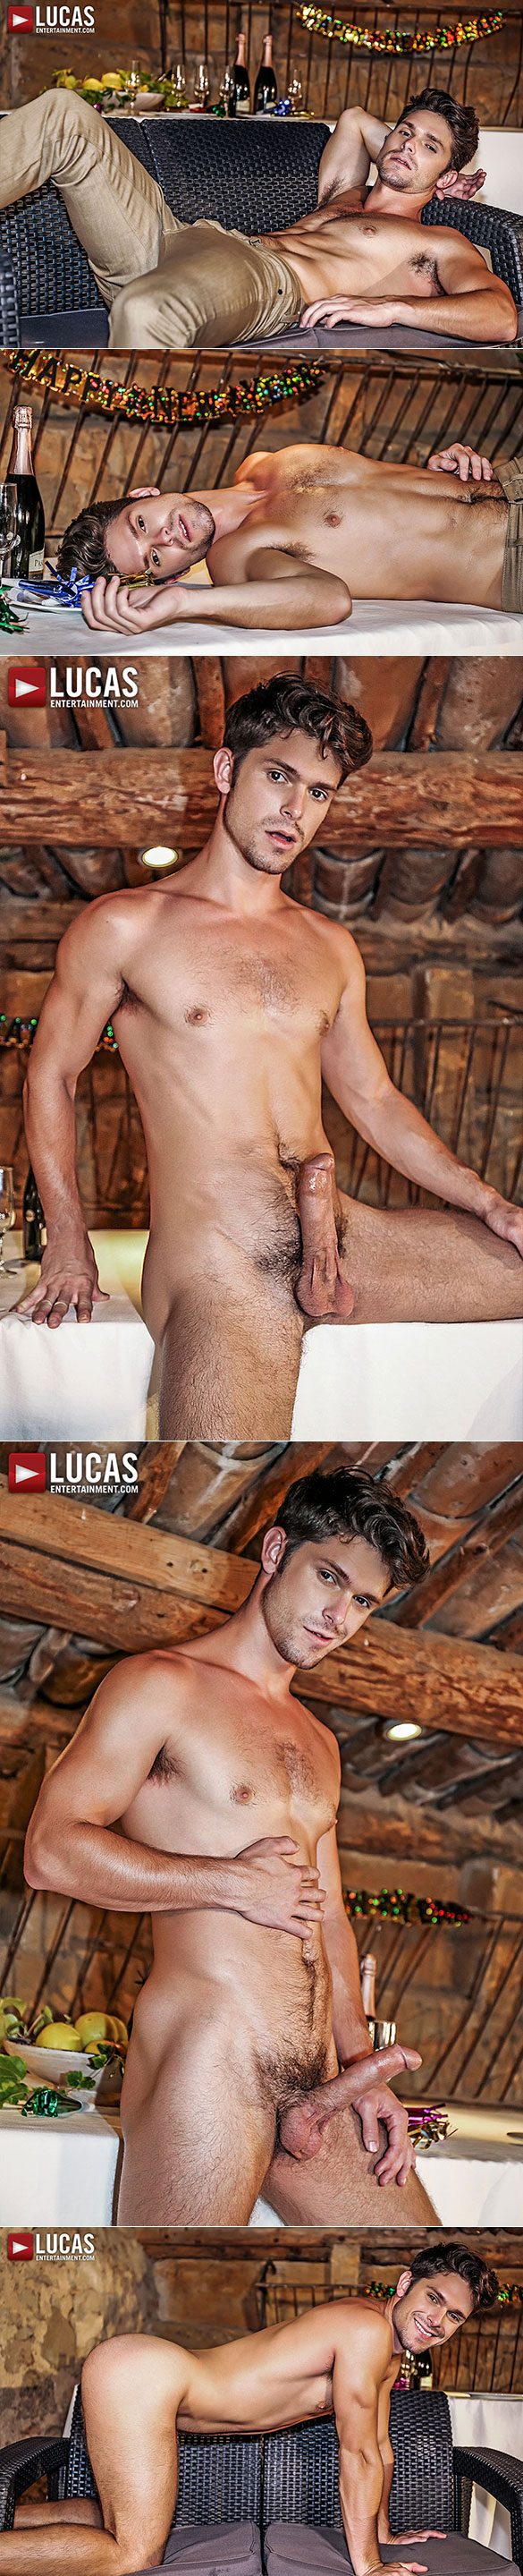 Lucas Entertainment: Ibrahim Moreno and Devin Franco's raw New Year's Eve fuck